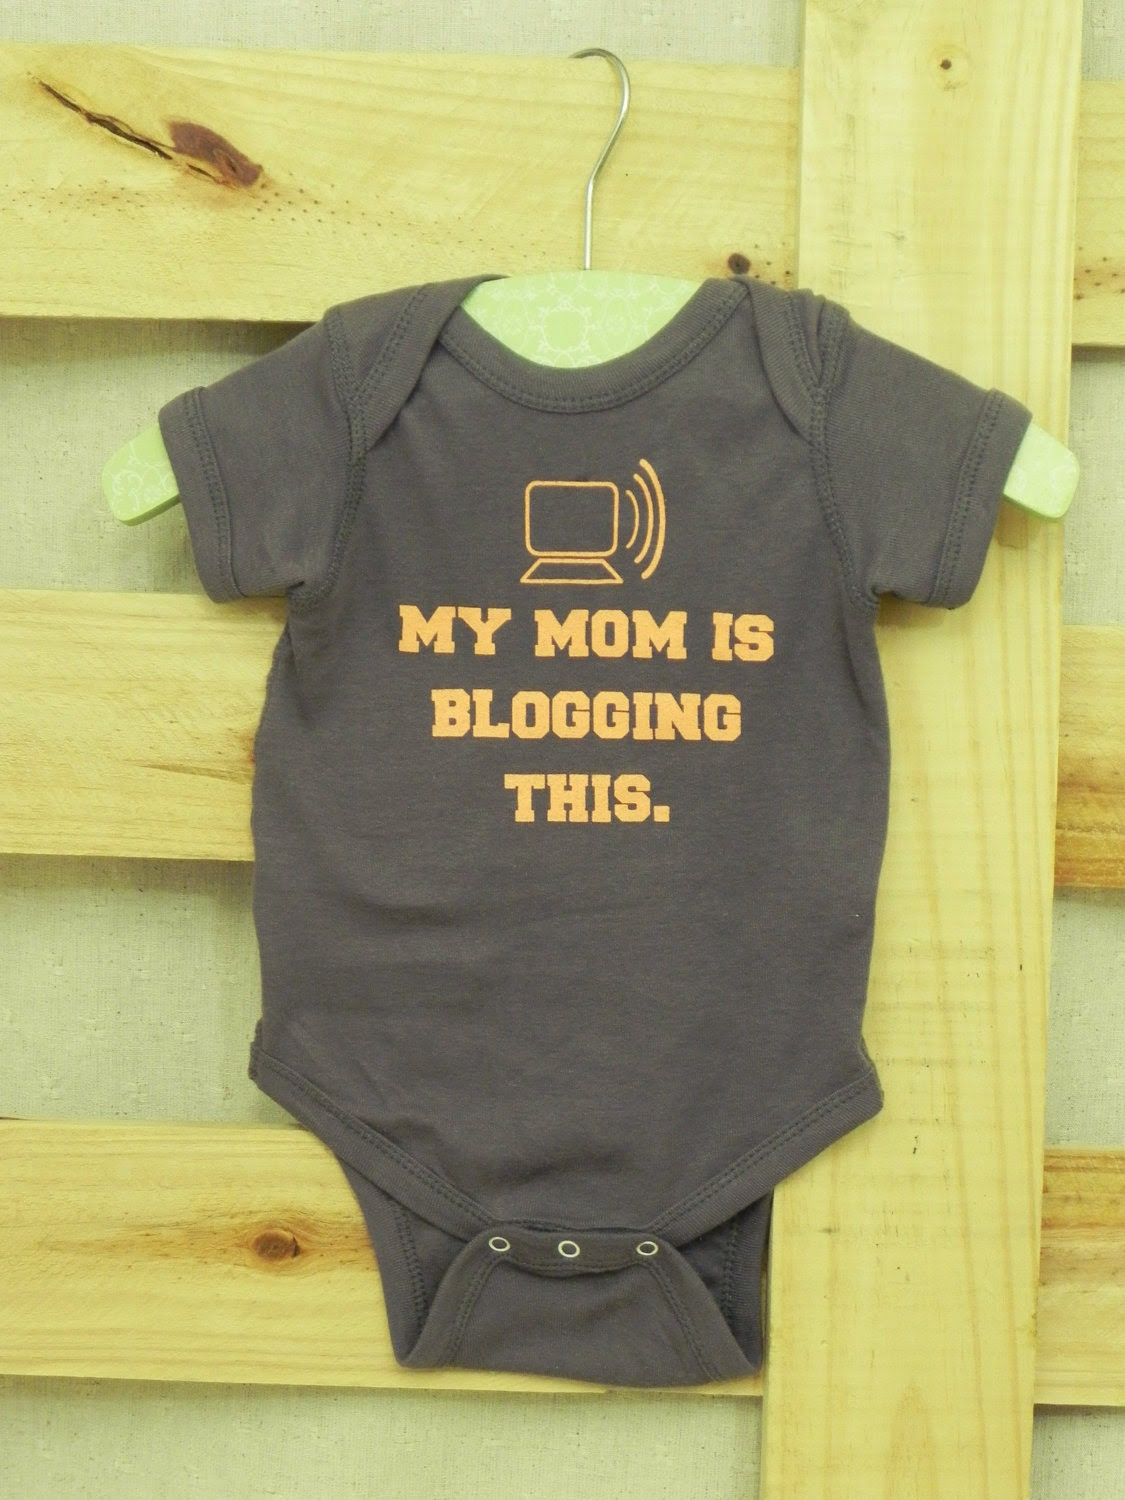 My Mom is Blogging This Baby Bodysuit (You Choose Size)